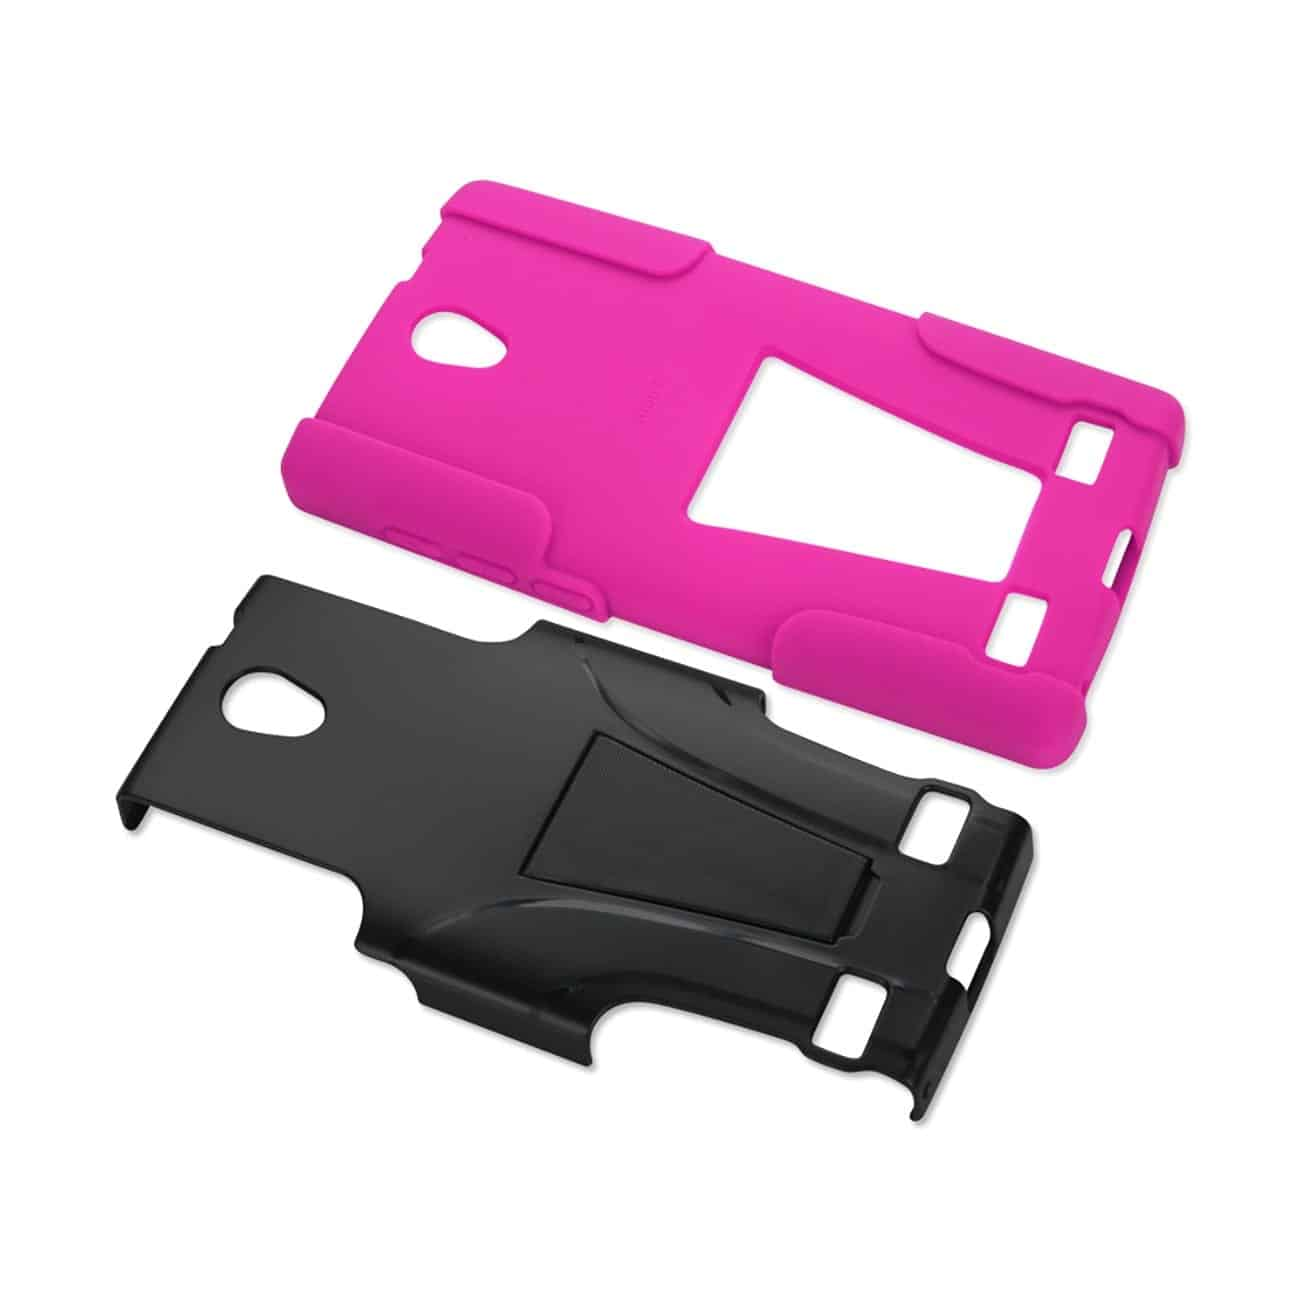 ZTE ZMAX 2 HYBRID HEAVY DUTY CASE WITH KICKSTAND IN HOT PINK BLACK